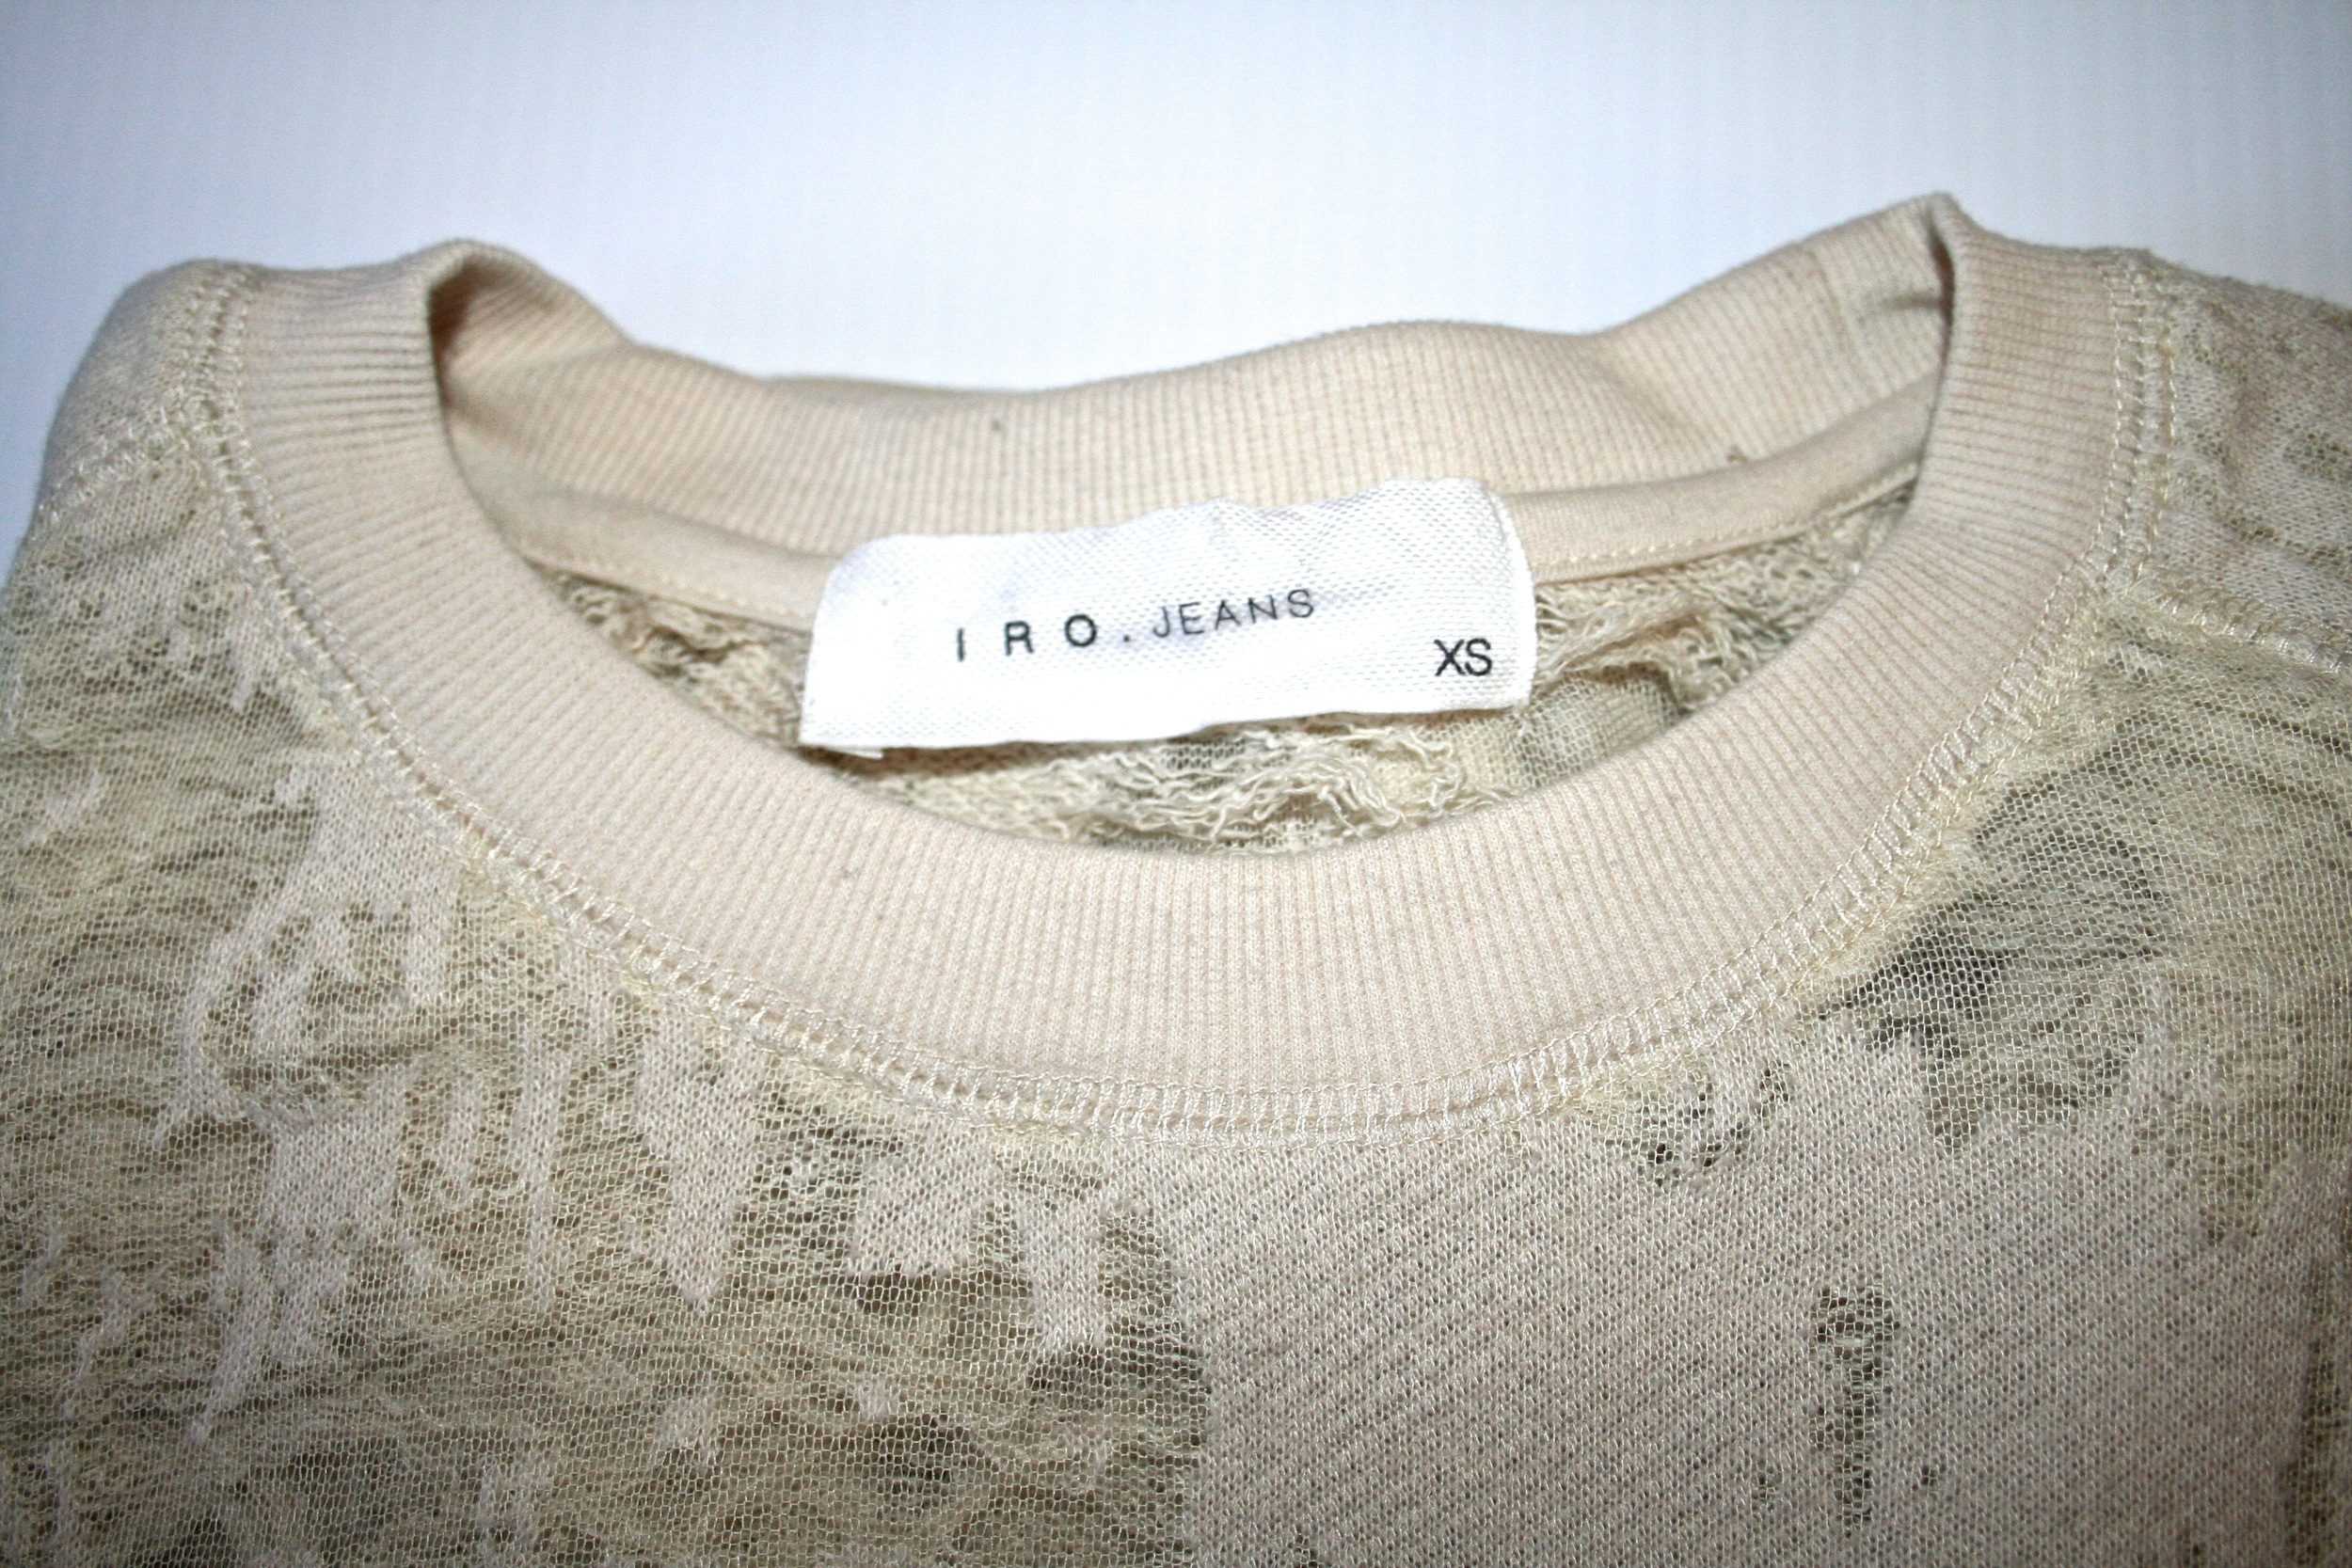 I R O   Jeans distressed sweater from   IRO in Abbott Kinney